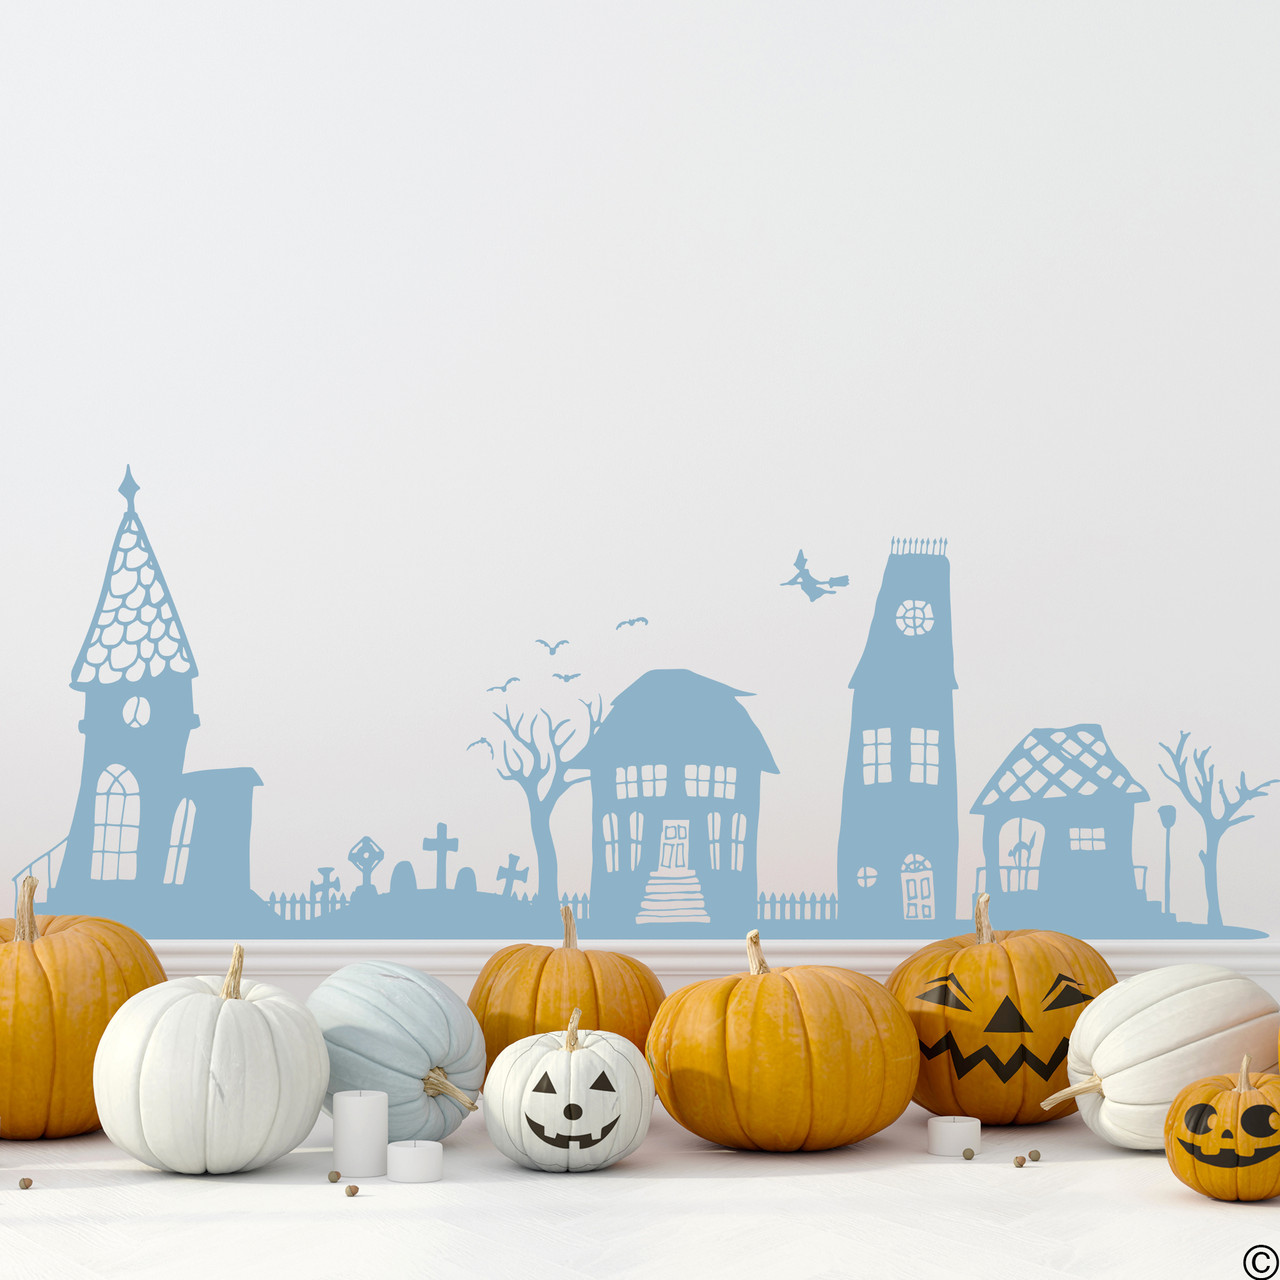 The Halloween houses wall decal in limited edition misty blue vinyl color.